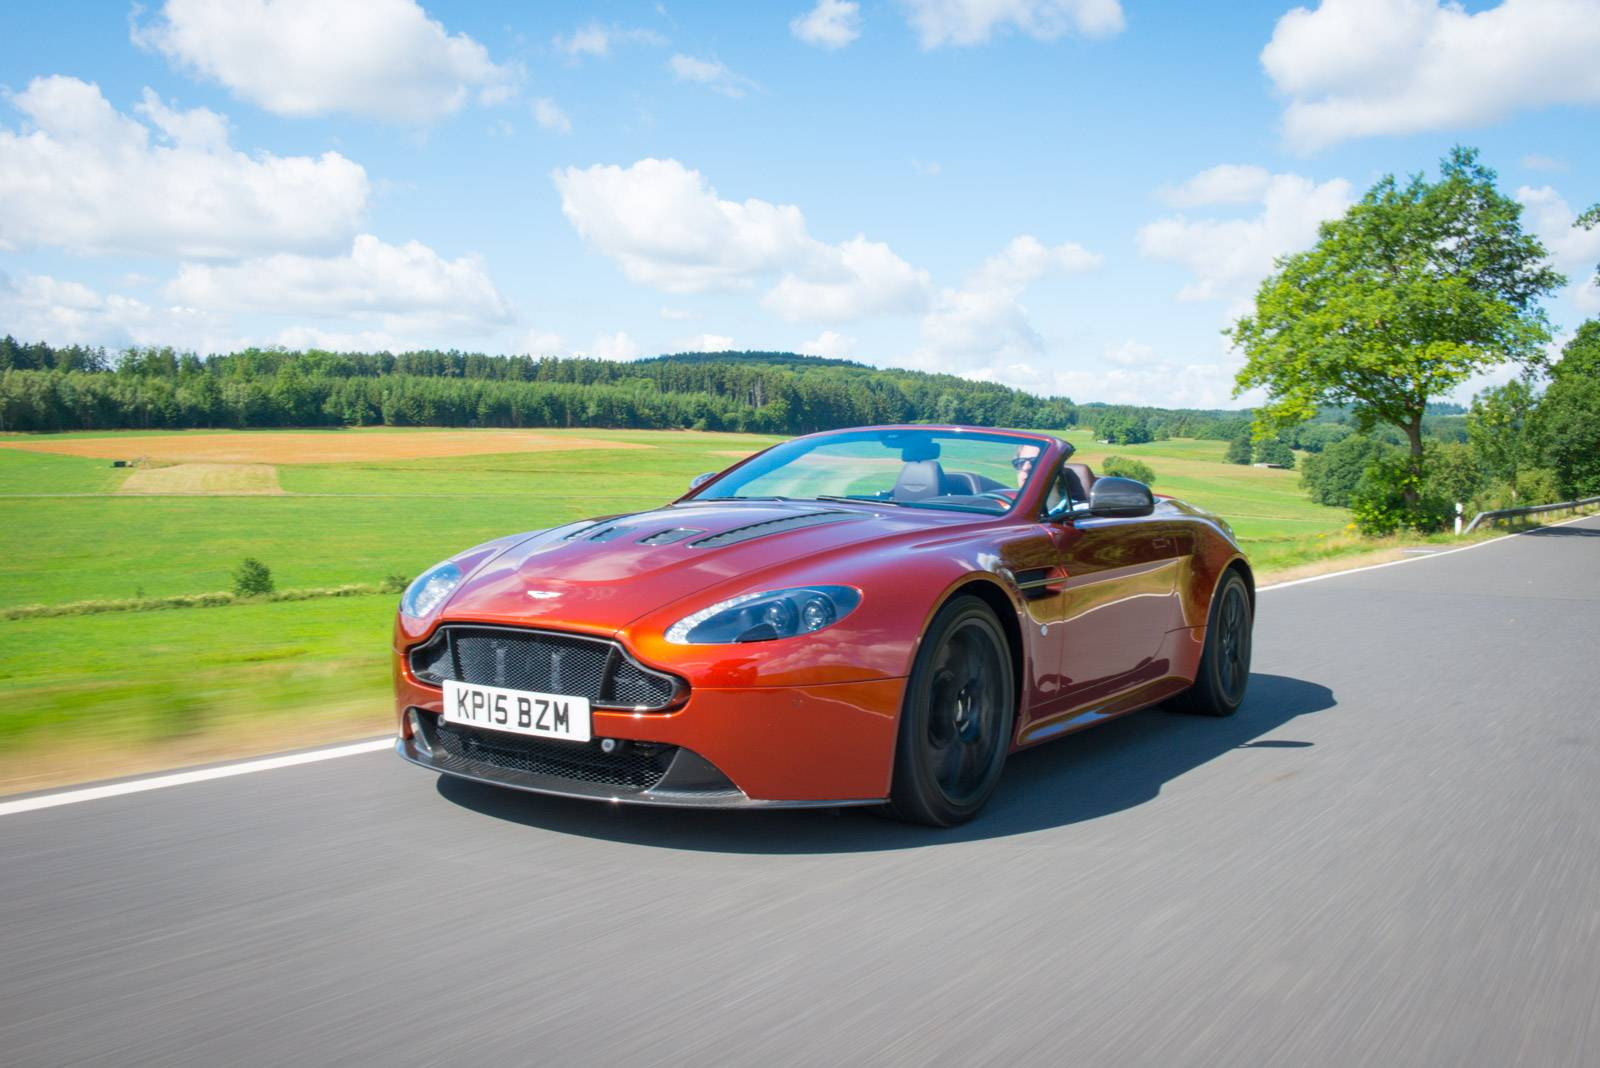 2016 aston martin v12 vantage s roadster review - gtspirit